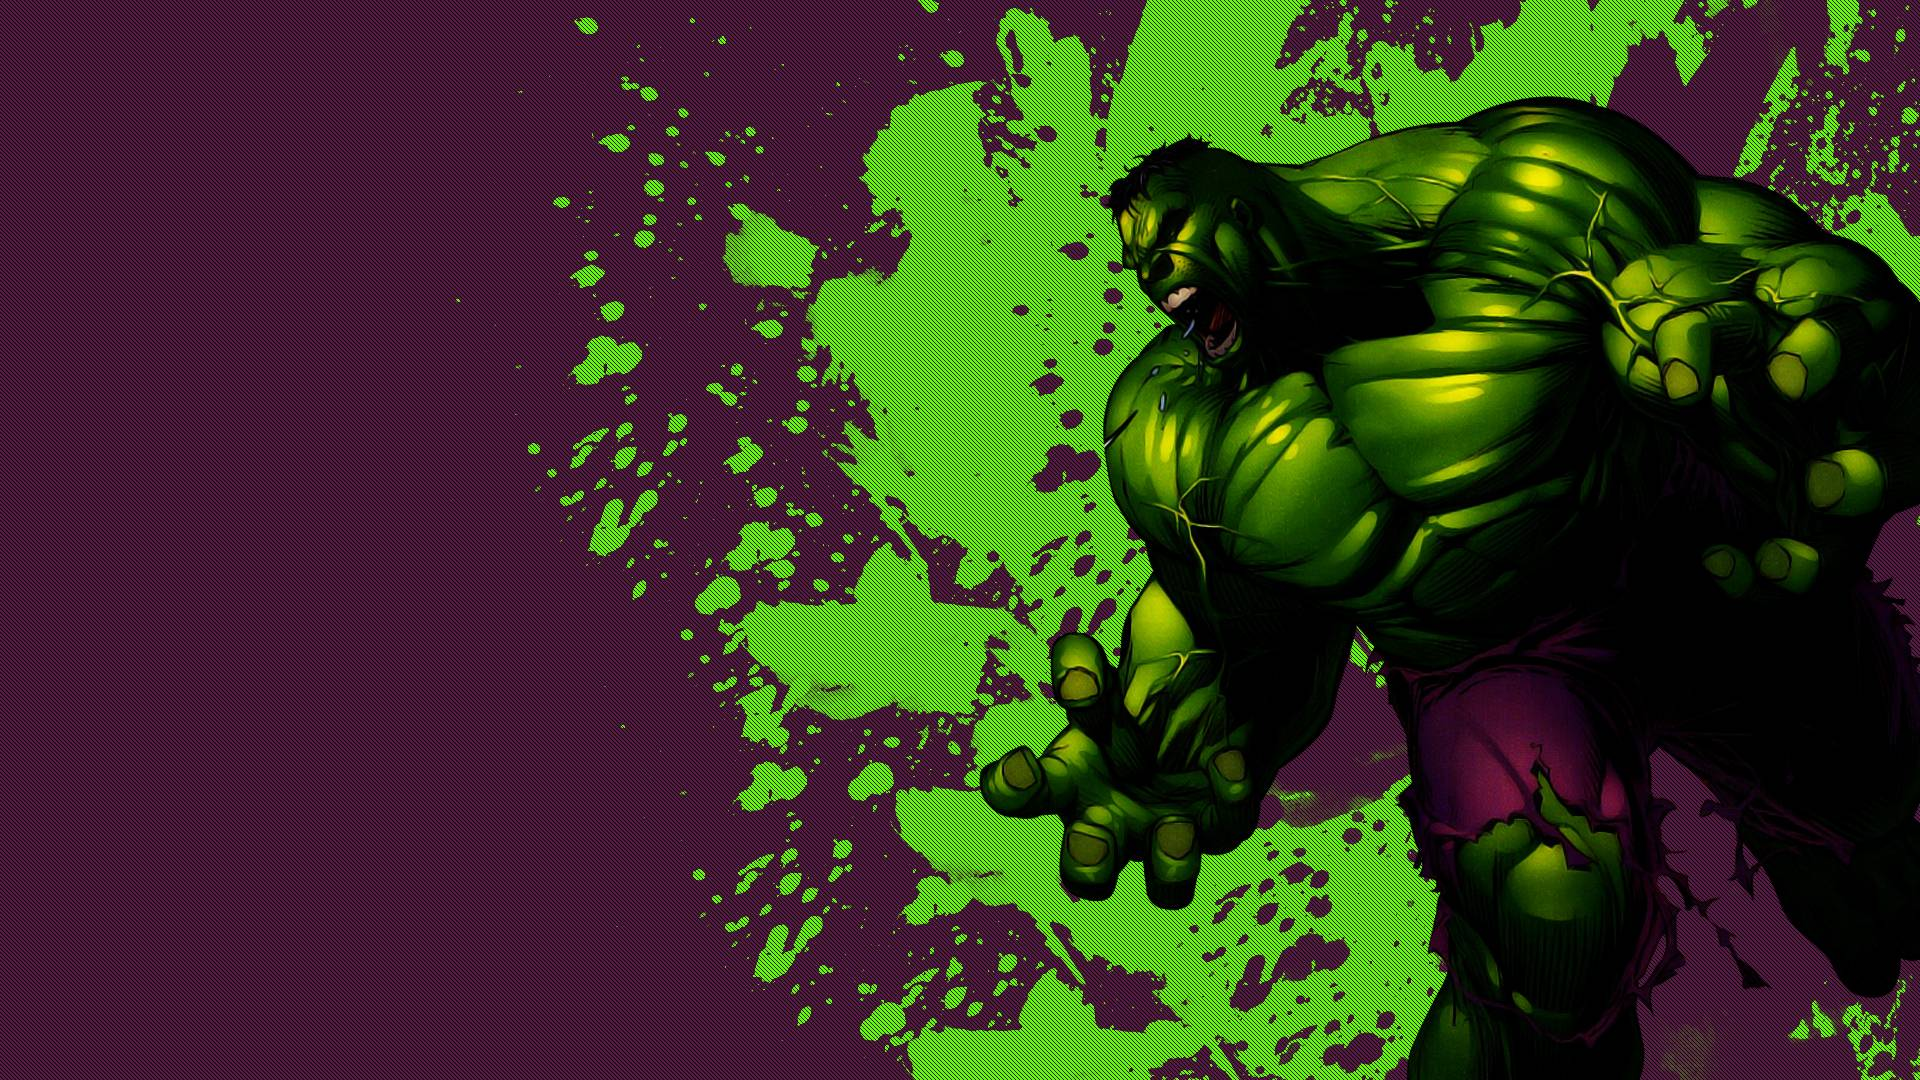 hulk wallpapers - wallpaper cave